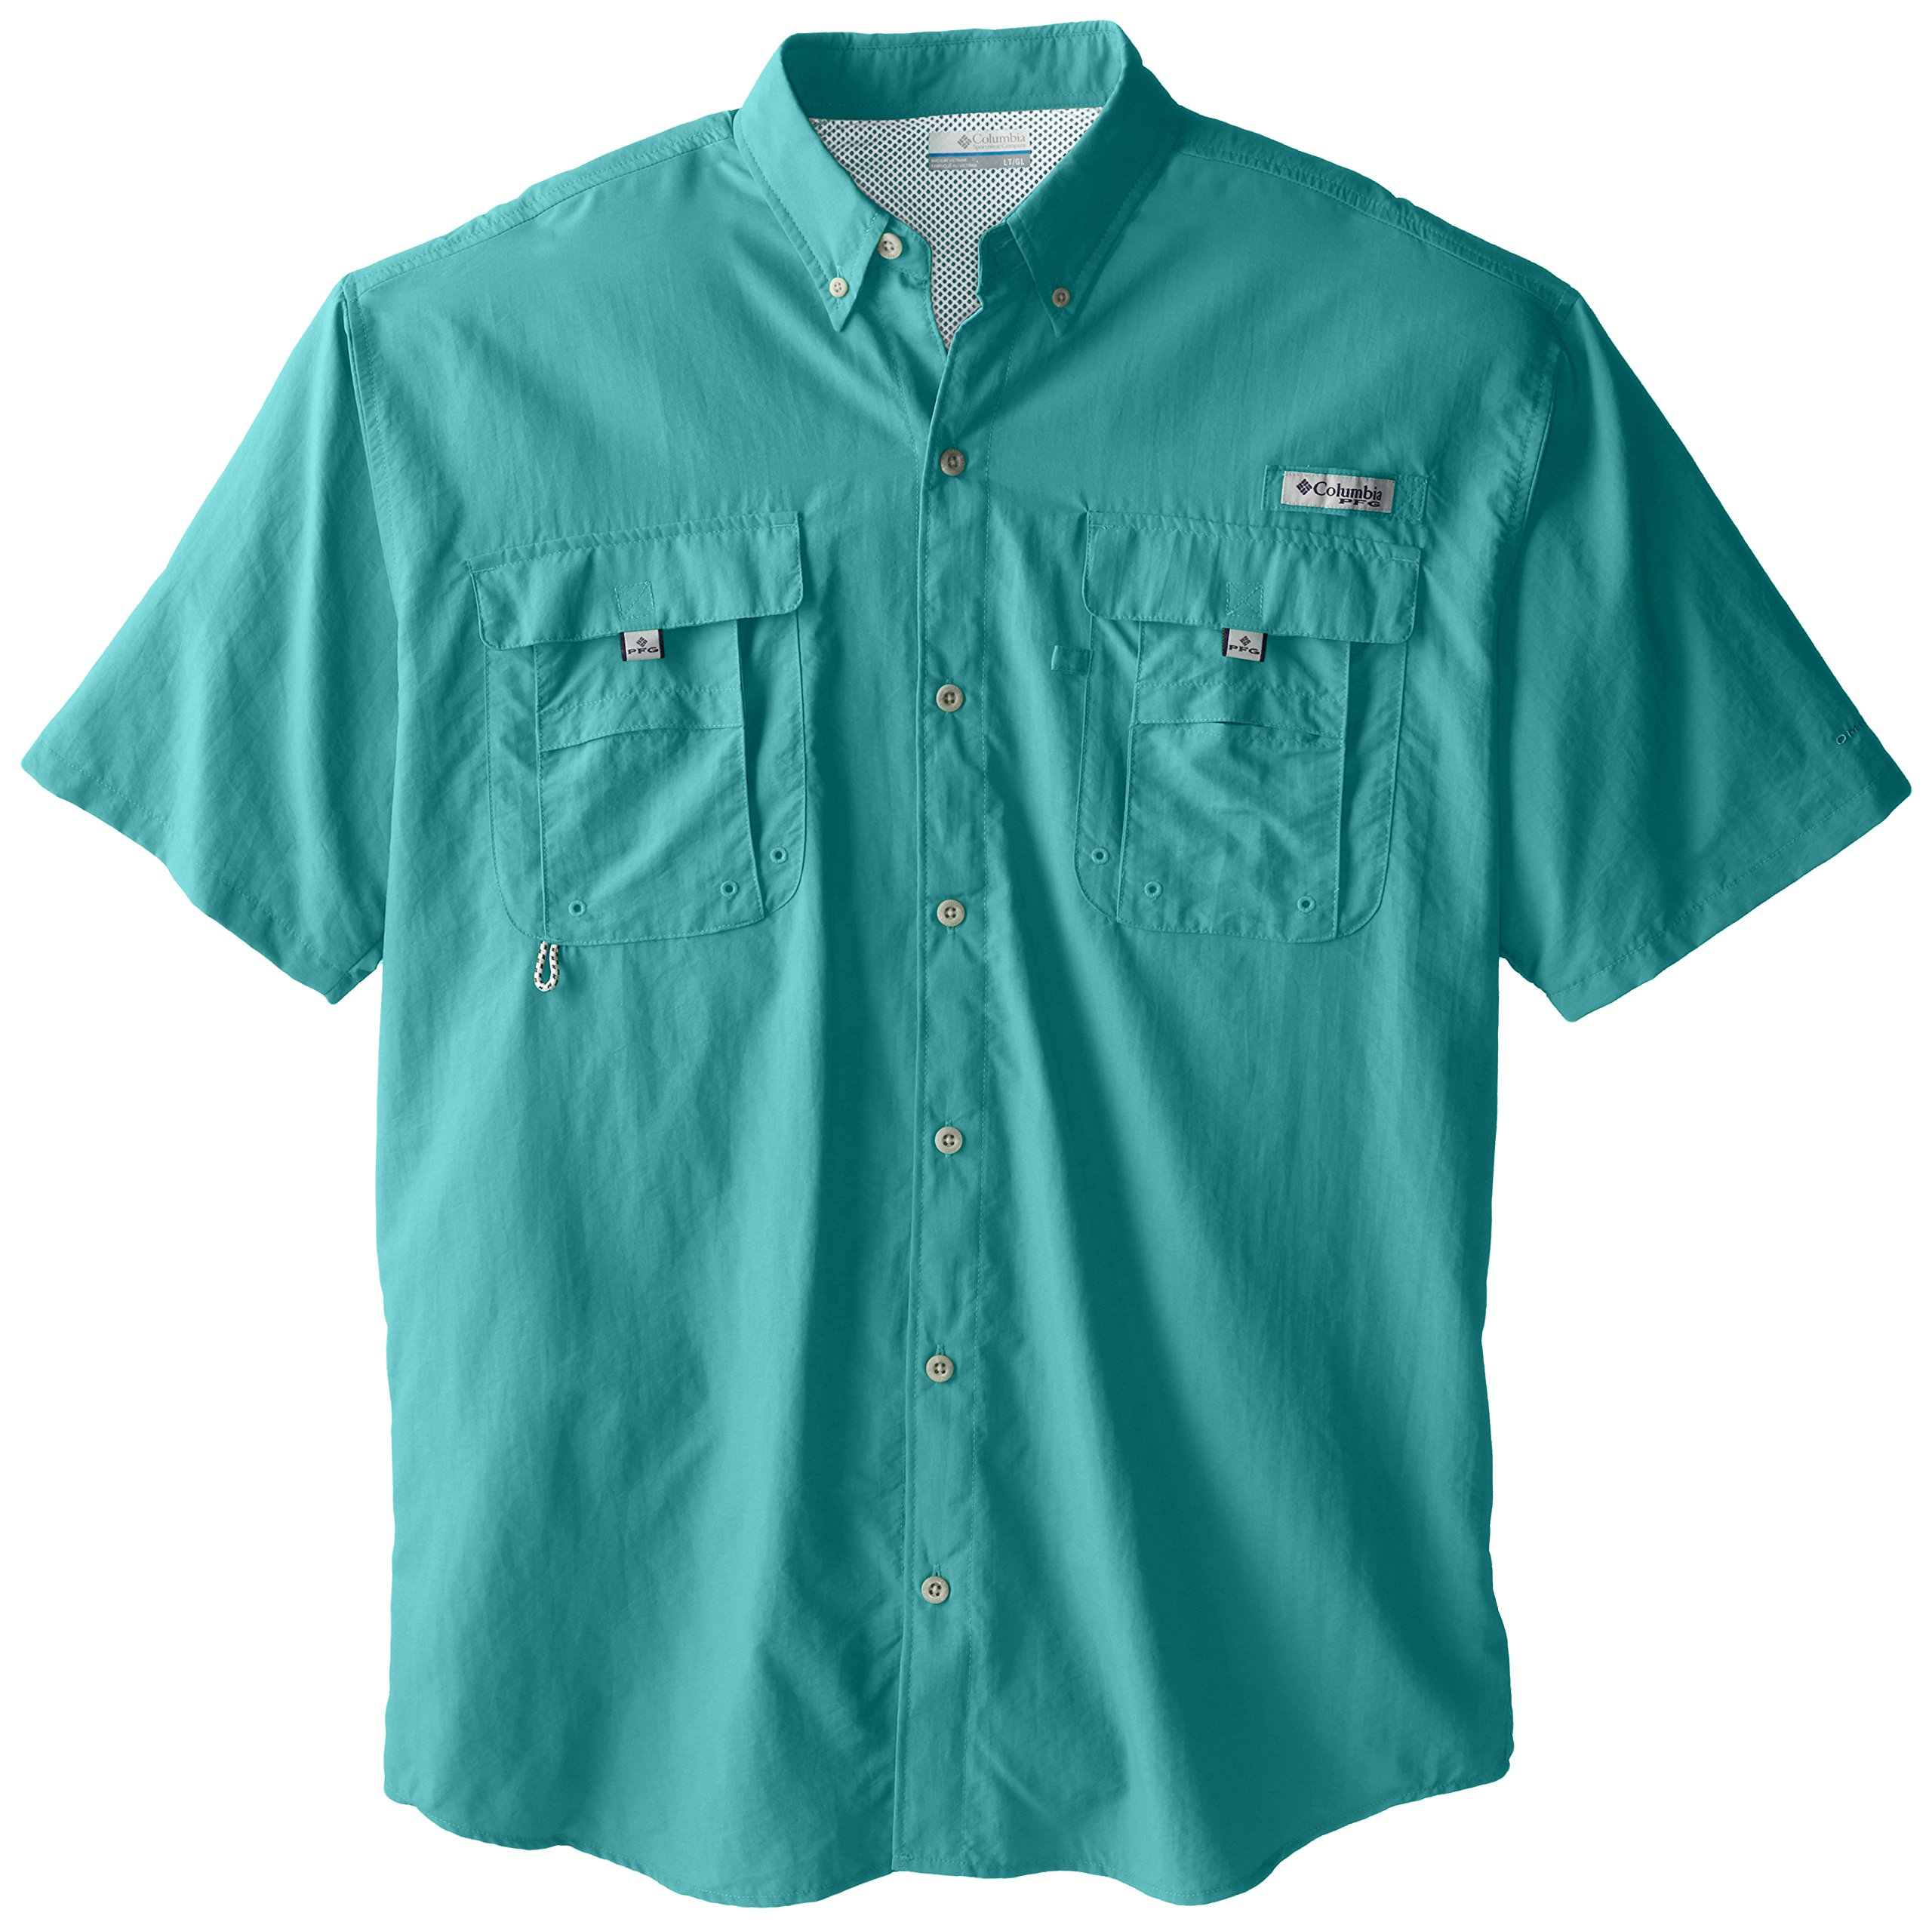 Columbia Men's PFG Bahama II Short Sleeve Shirt, Teal, Large